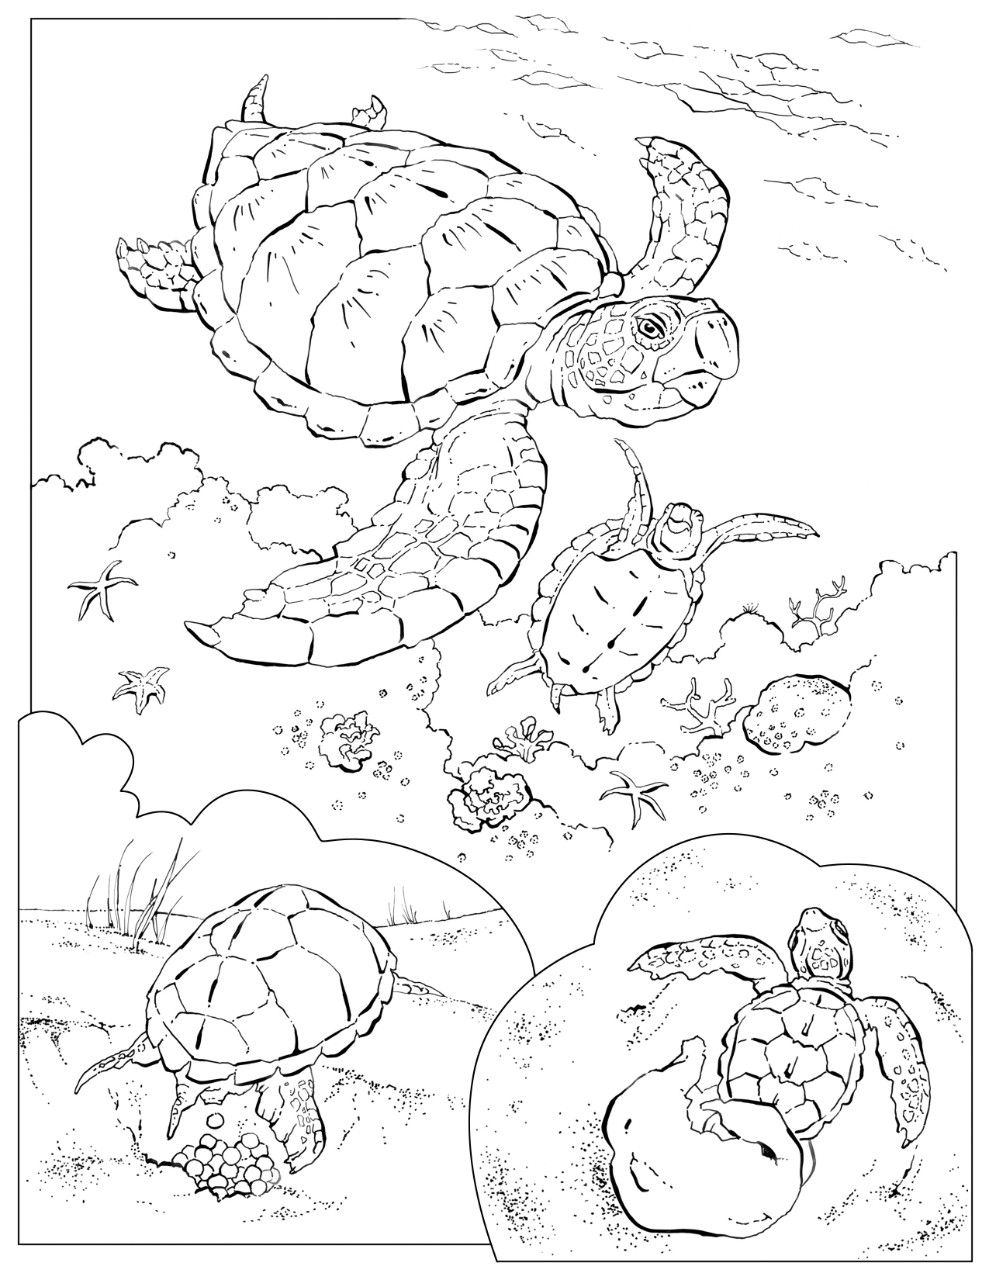 national geographic coloring pages Coloring Book: Animals (A to I) | Kid's play | Coloring pages  national geographic coloring pages